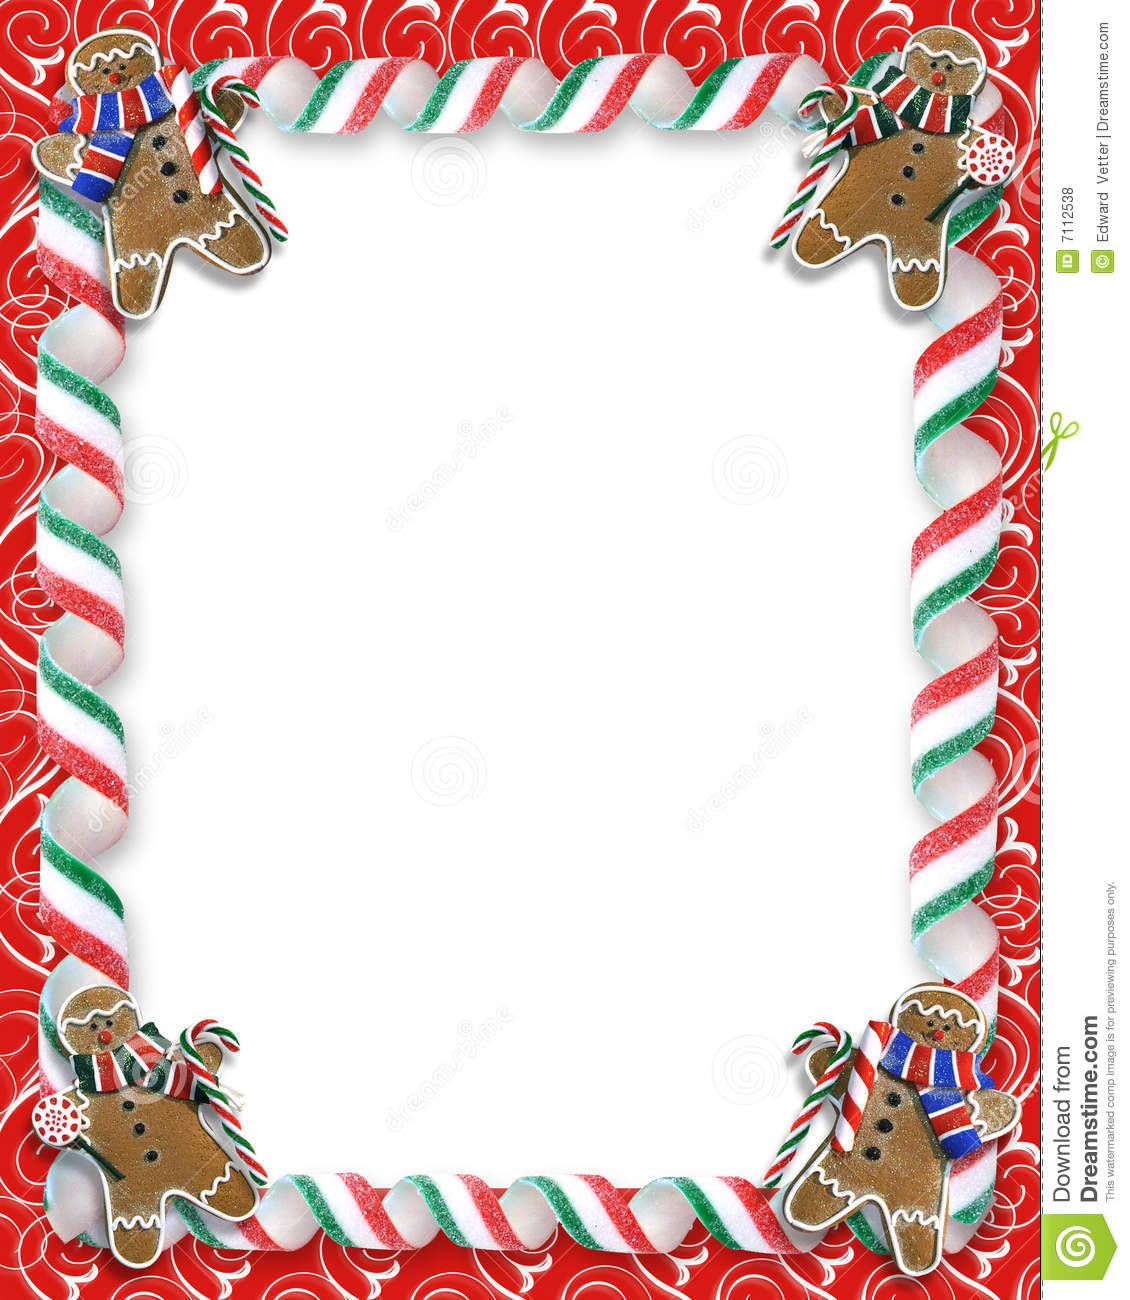 Letter Shelf Christmas Border Cookies And Candy Stock Illustration